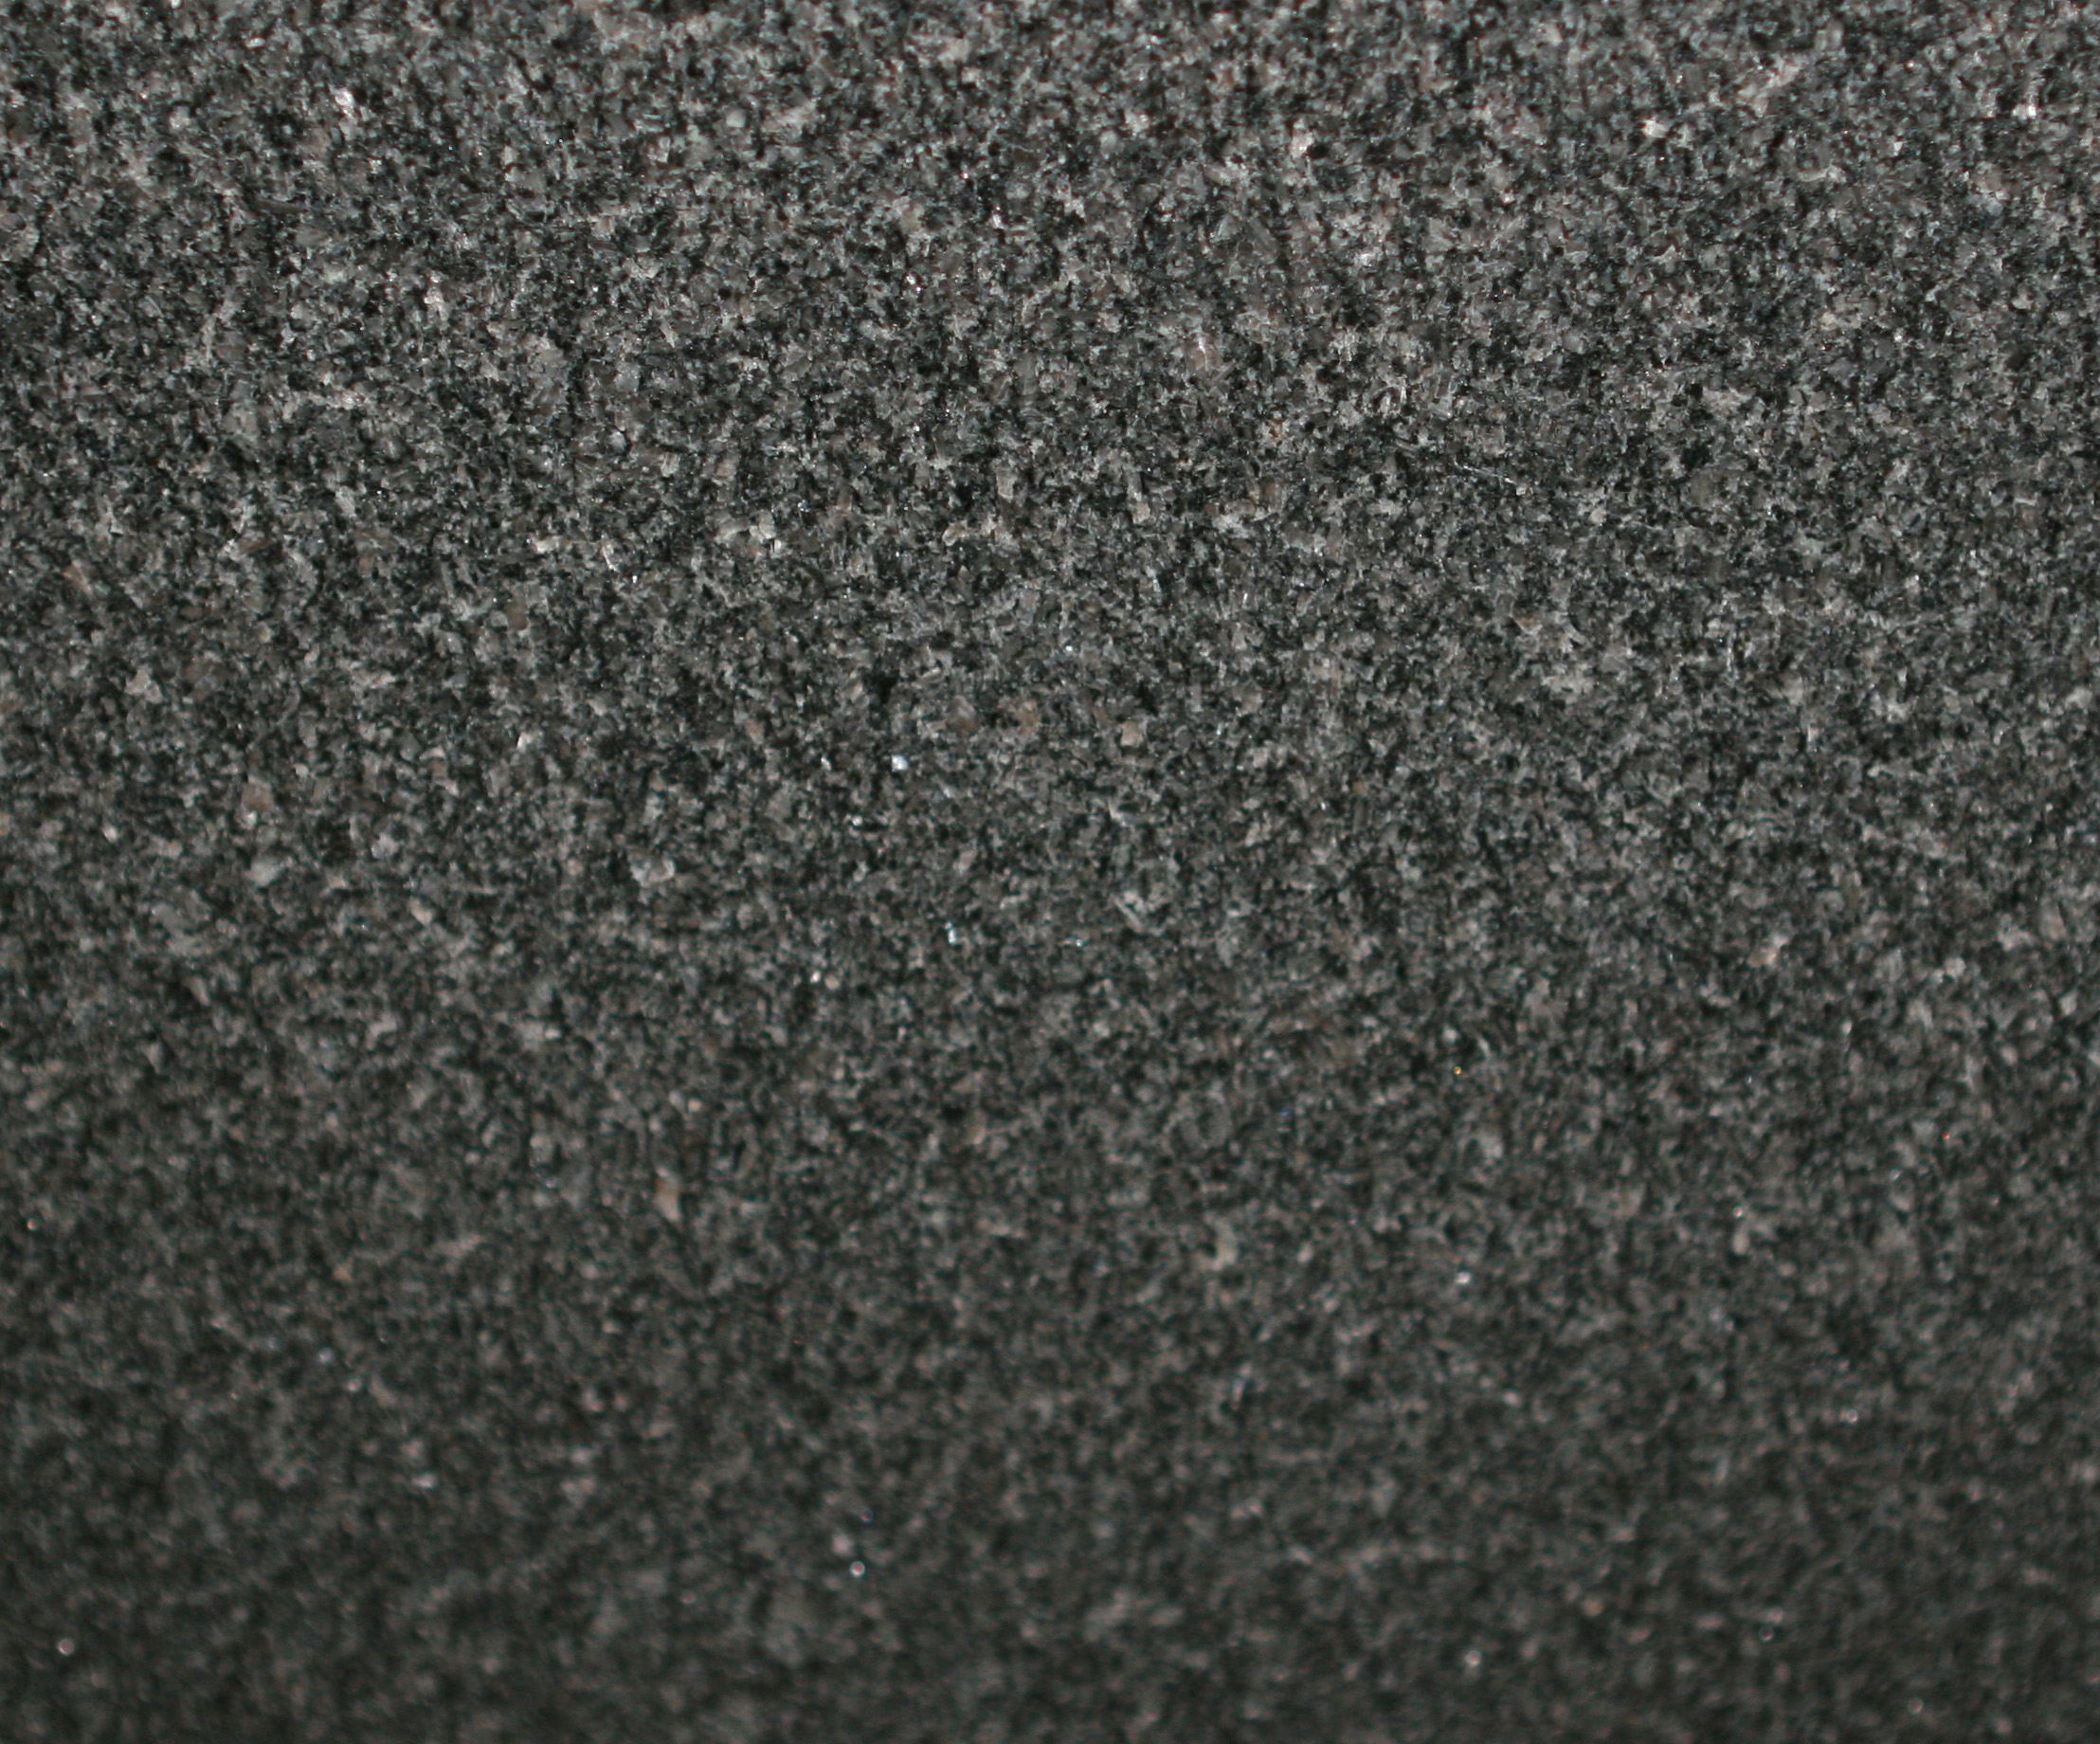 texture texture granite Black Background and some PPT Template 2216x1840